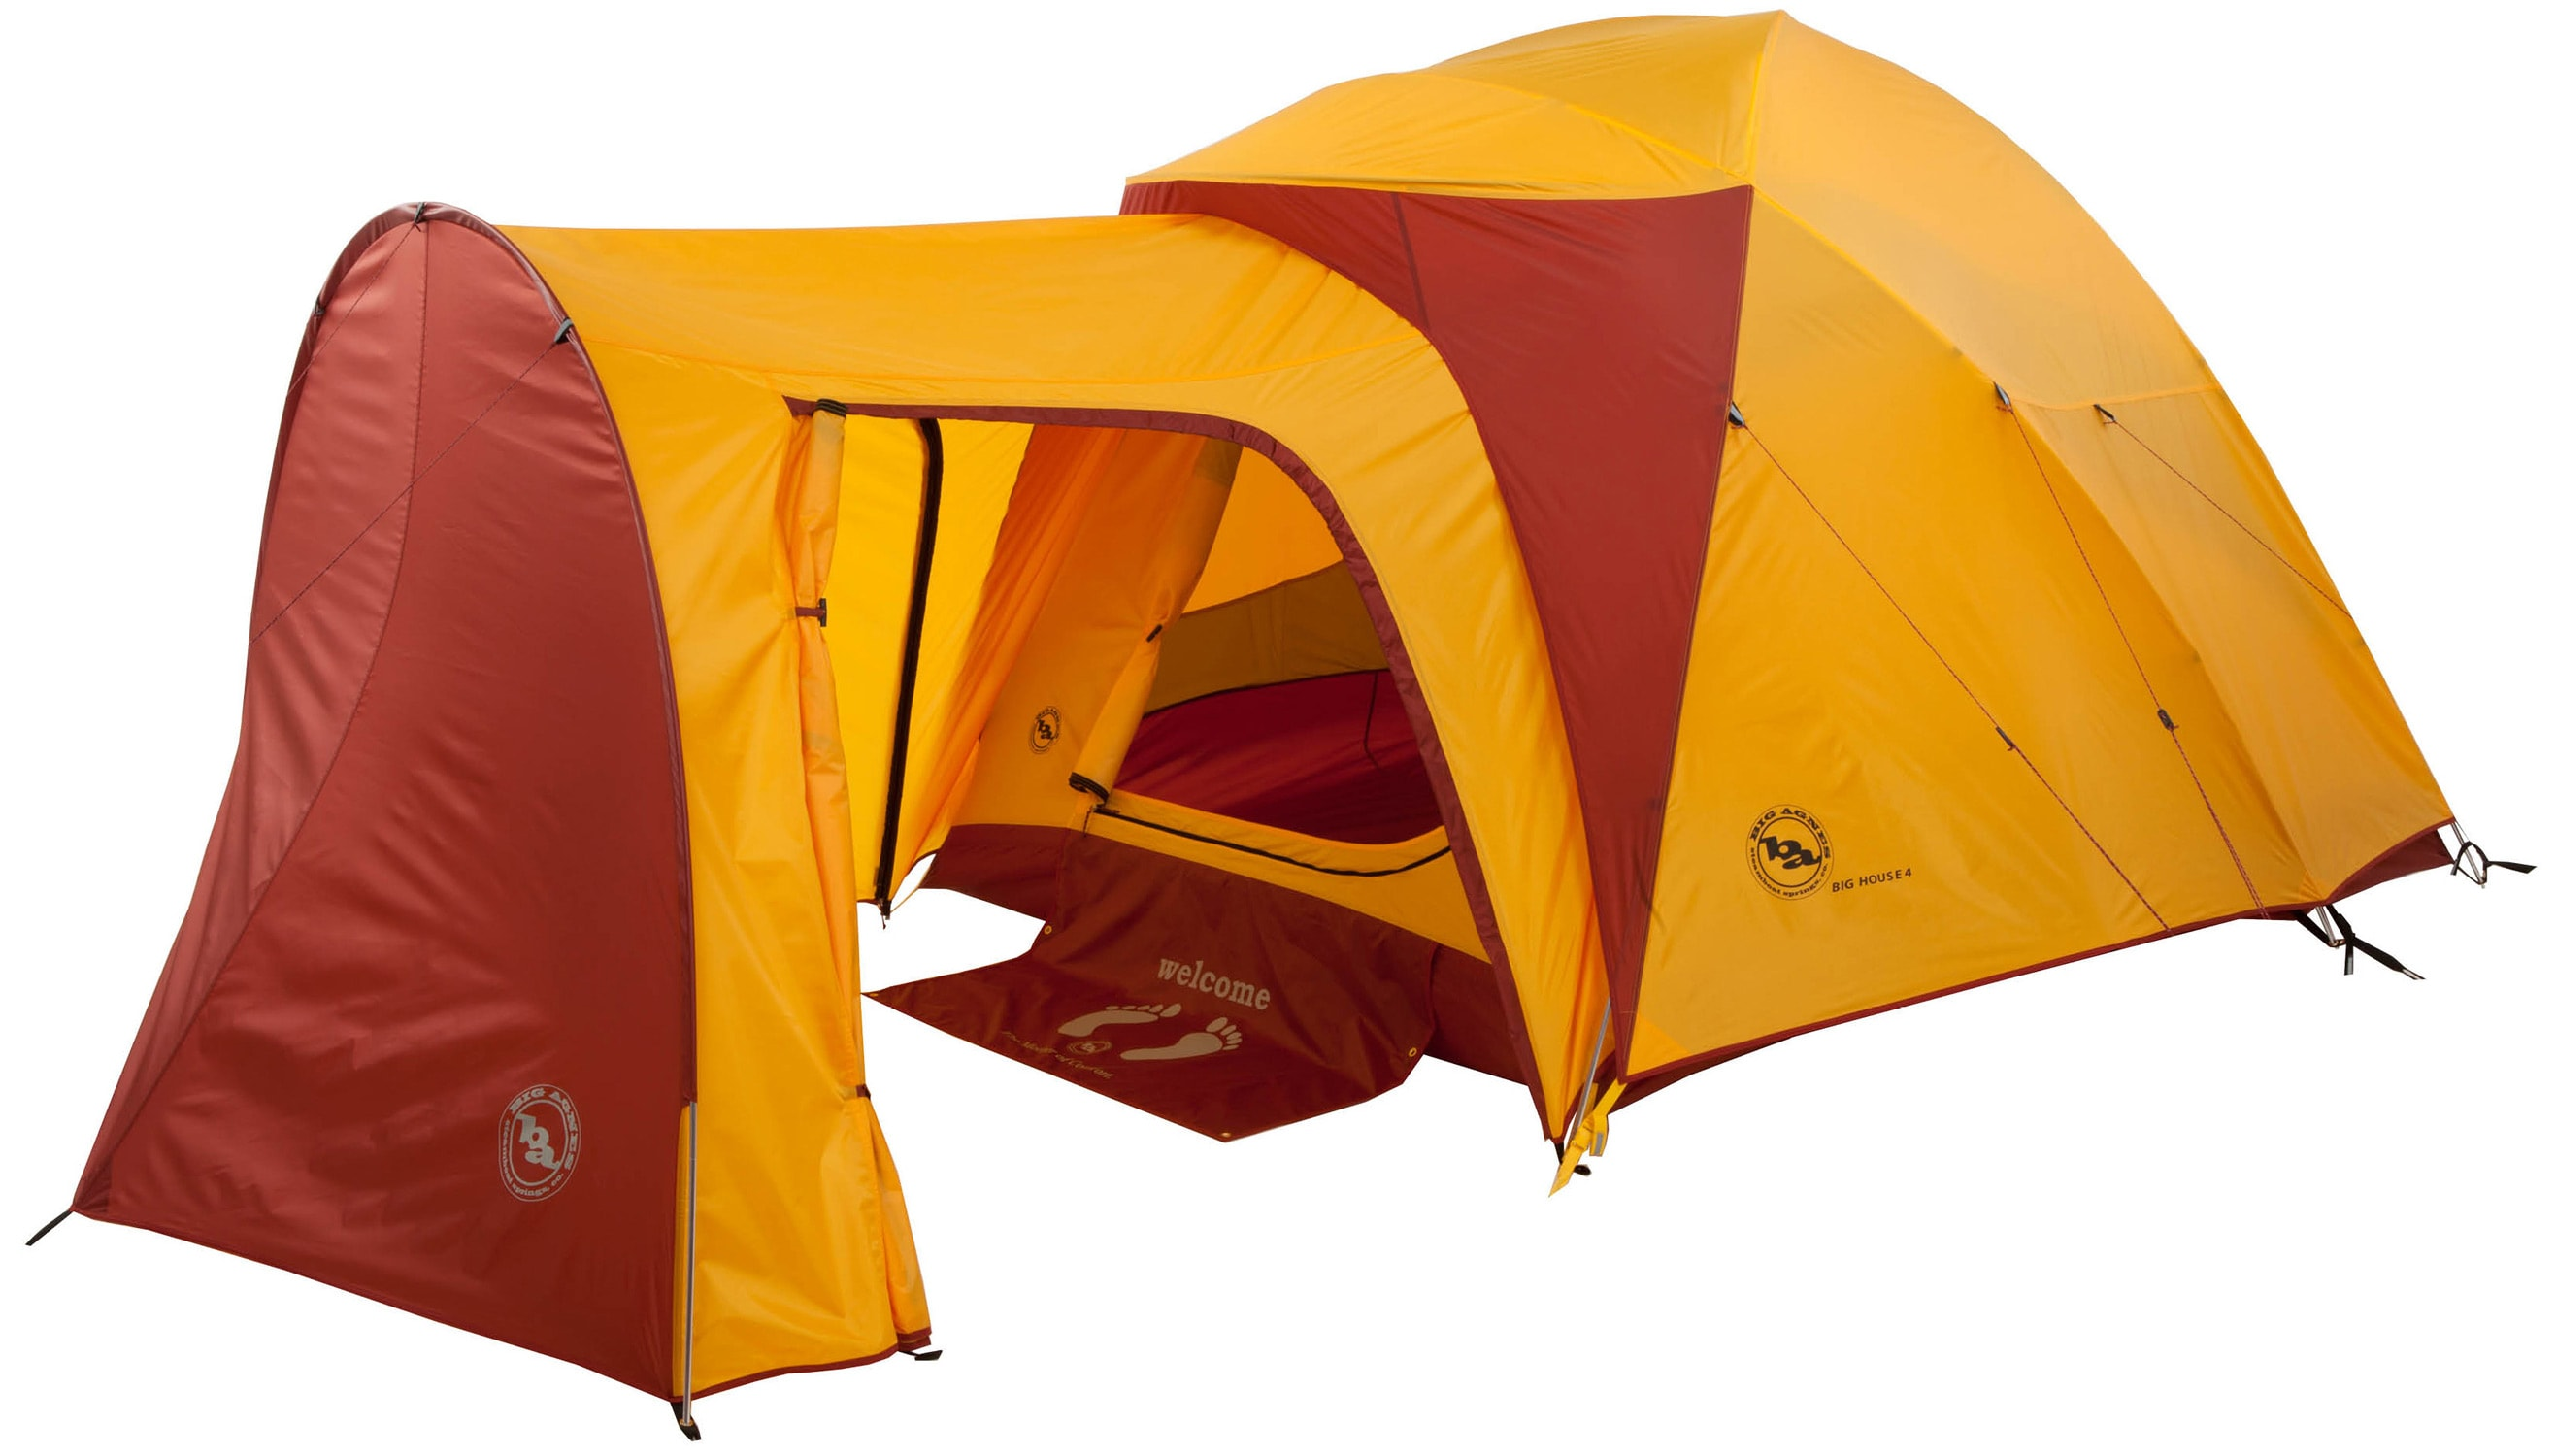 Big Agnes Big House 4 Tent - thumbnail 1  sc 1 st  The House & On Sale Big Agnes Big House 4 Tent up to 60% off